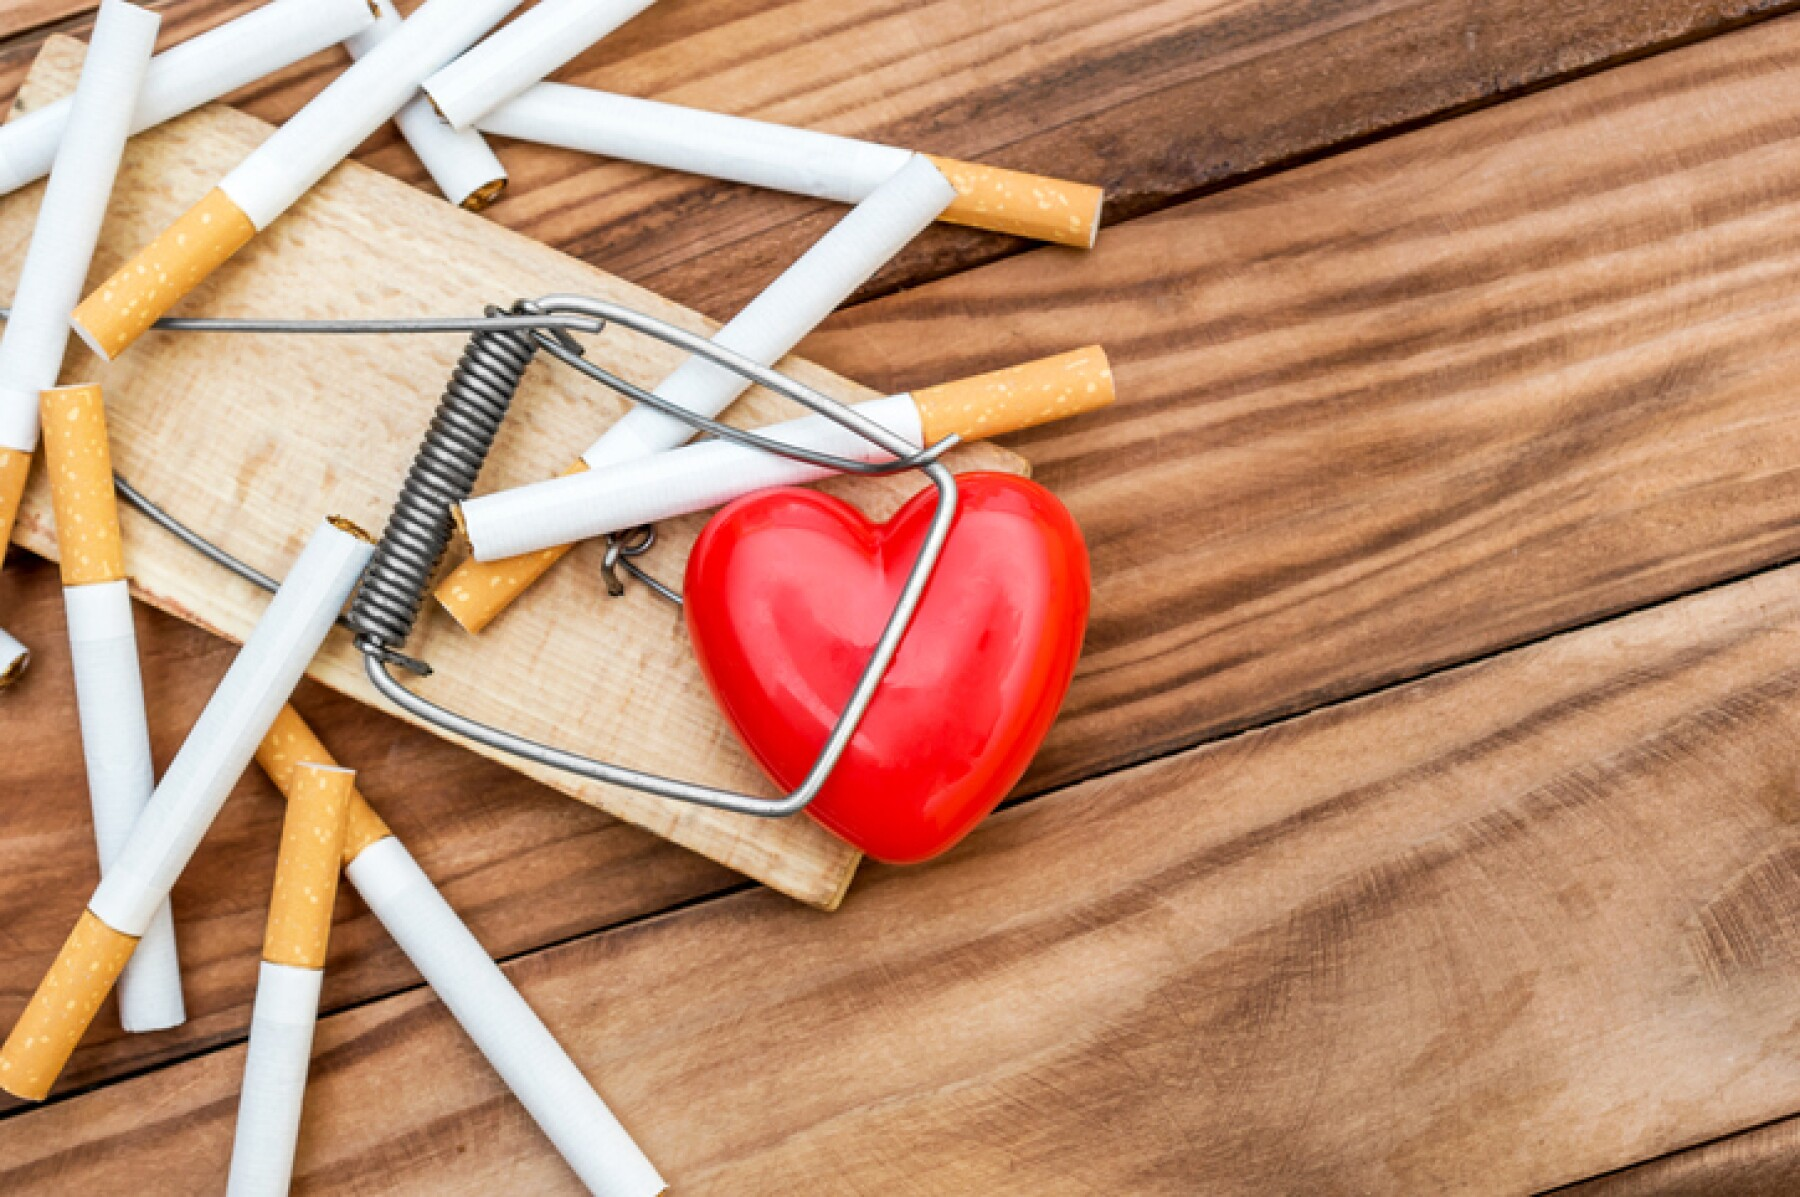 Red heart in mousetrap with cigarettes on the wooden background. Top view.